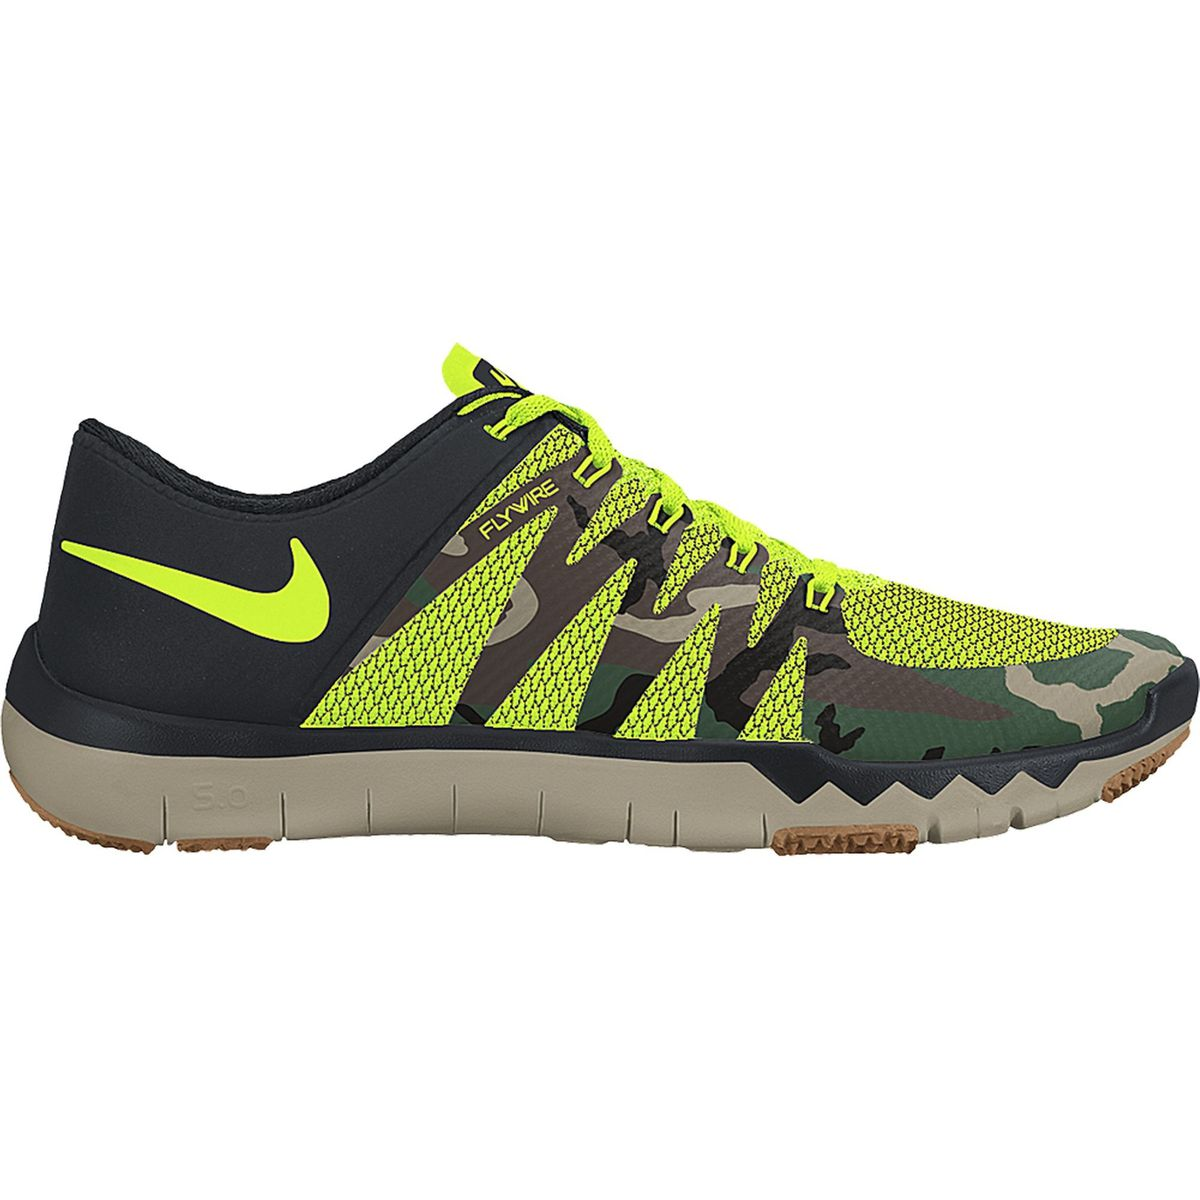 a4170cab6c9ce ... new zealand mens nike free trainer 5.0 v6 cross training shoe dd00d  62c03